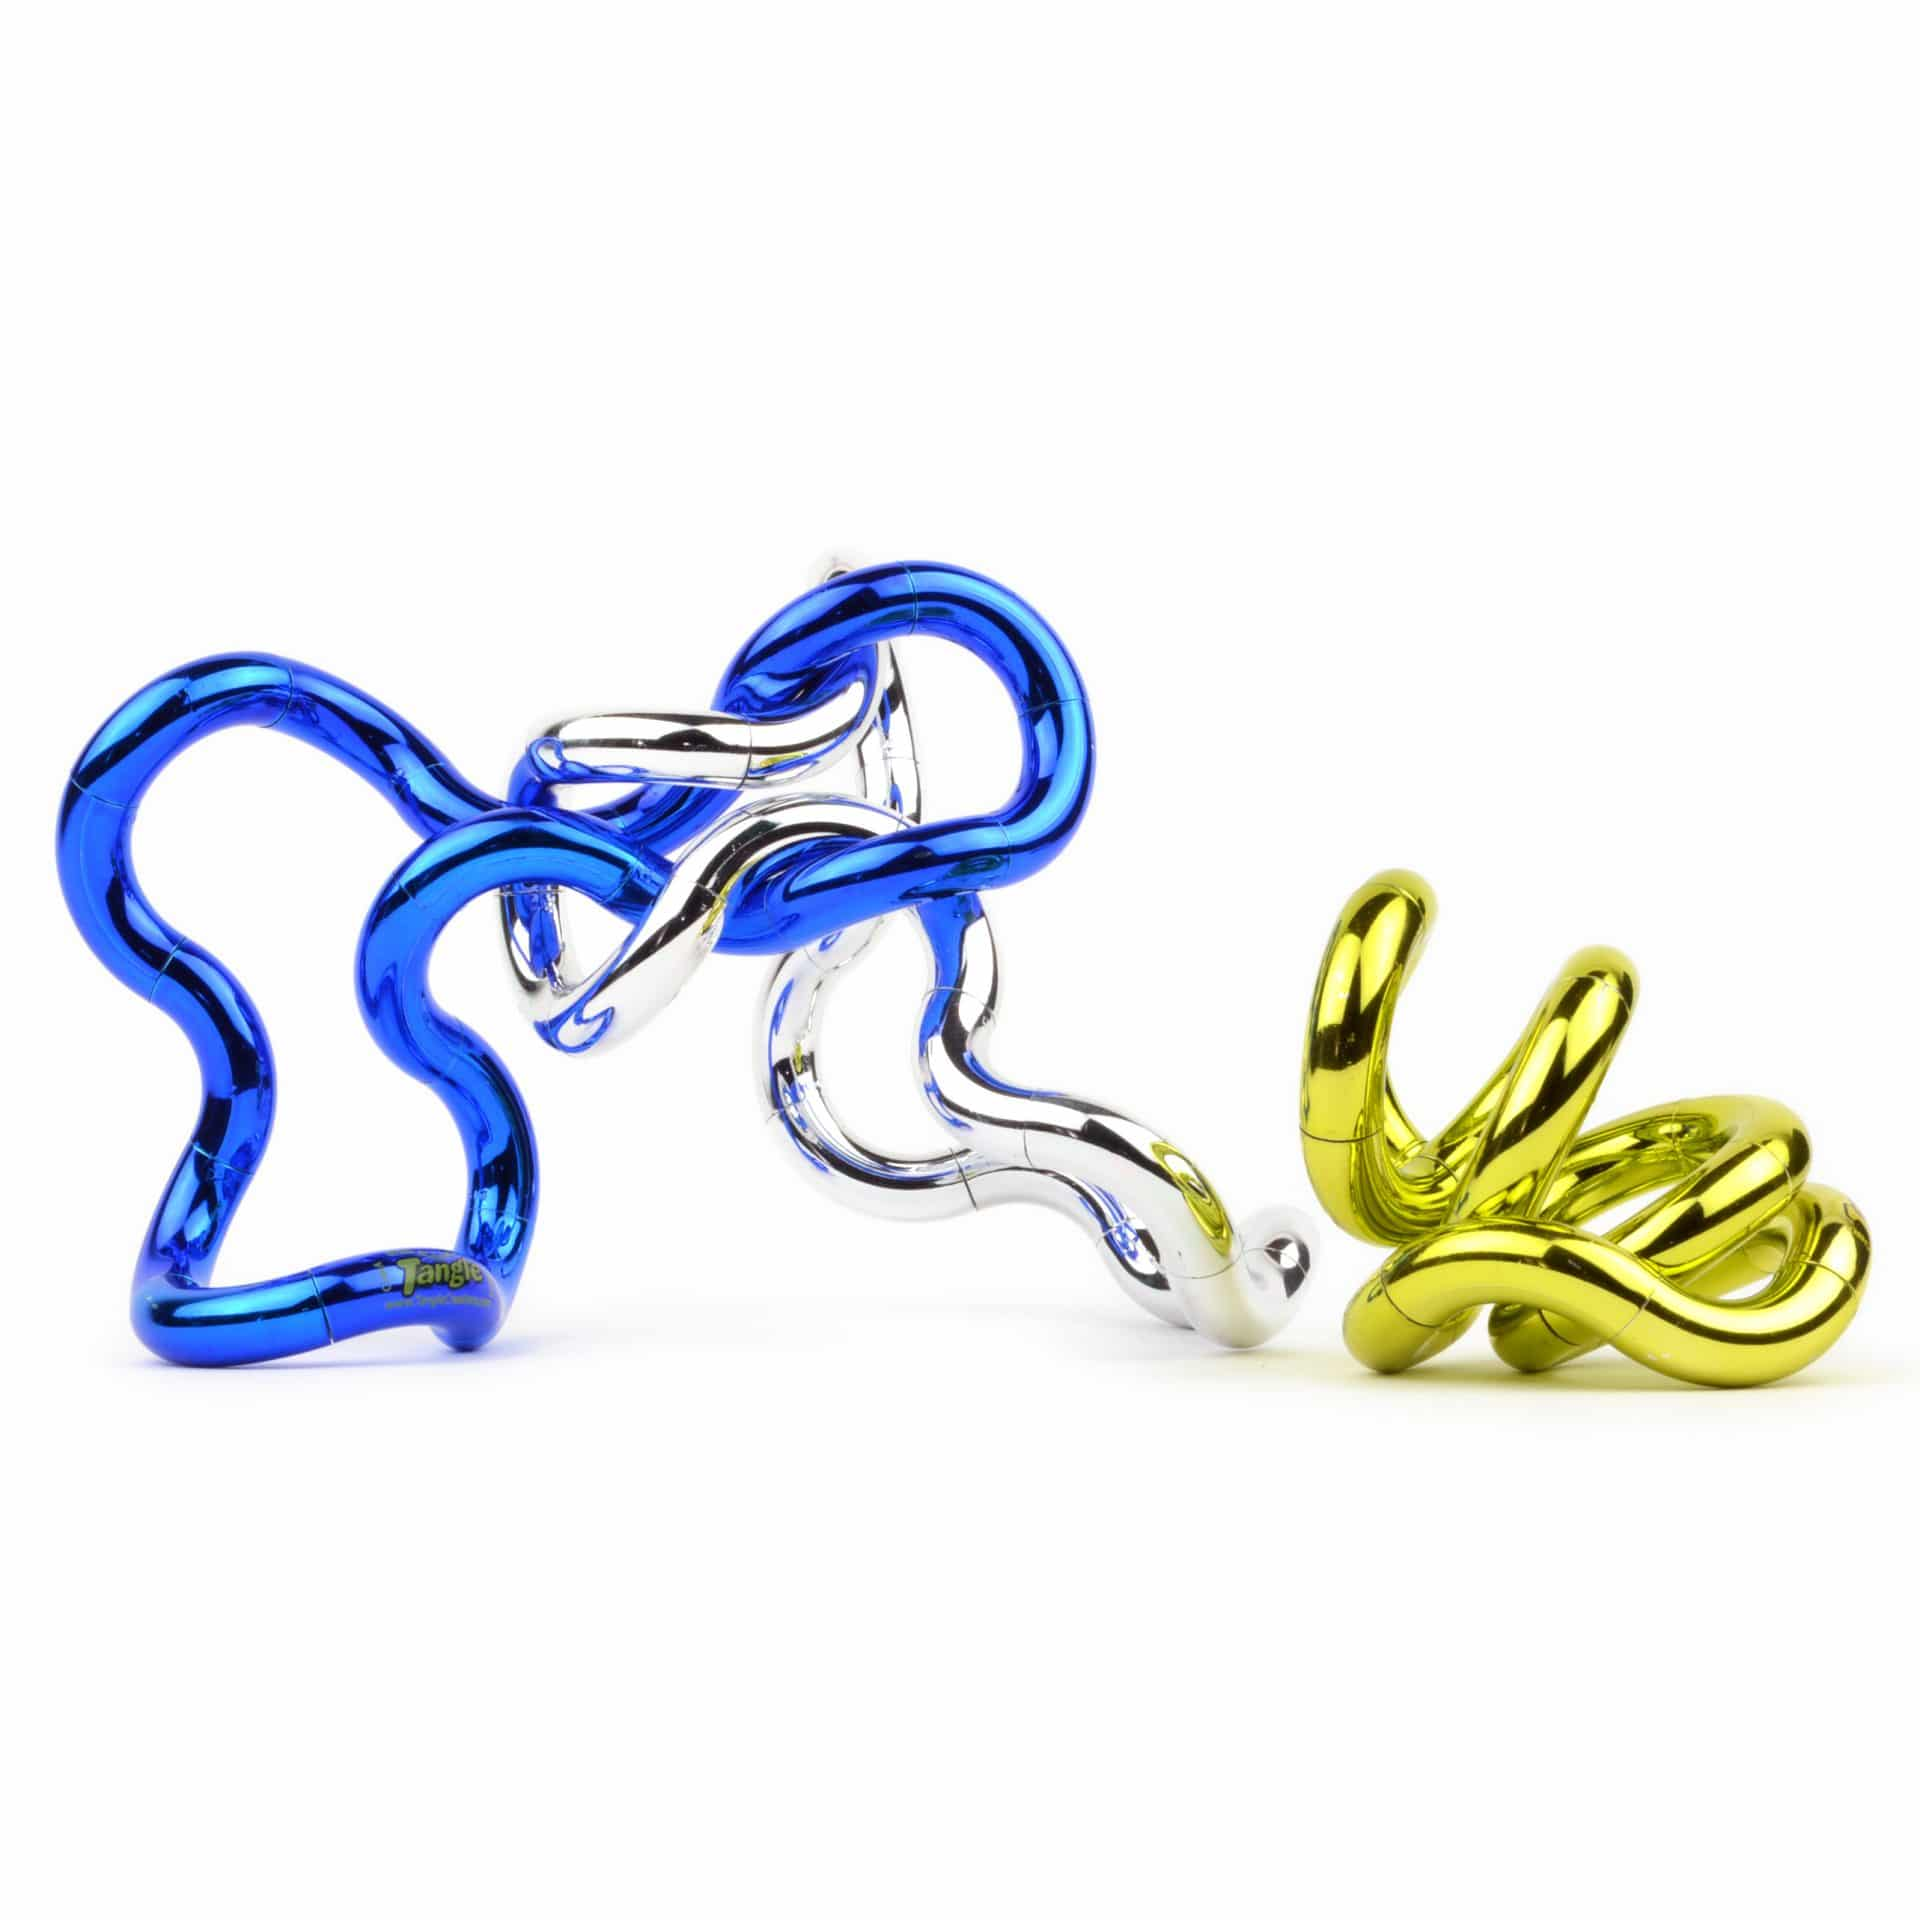 Tangle junior metallic bendable toys